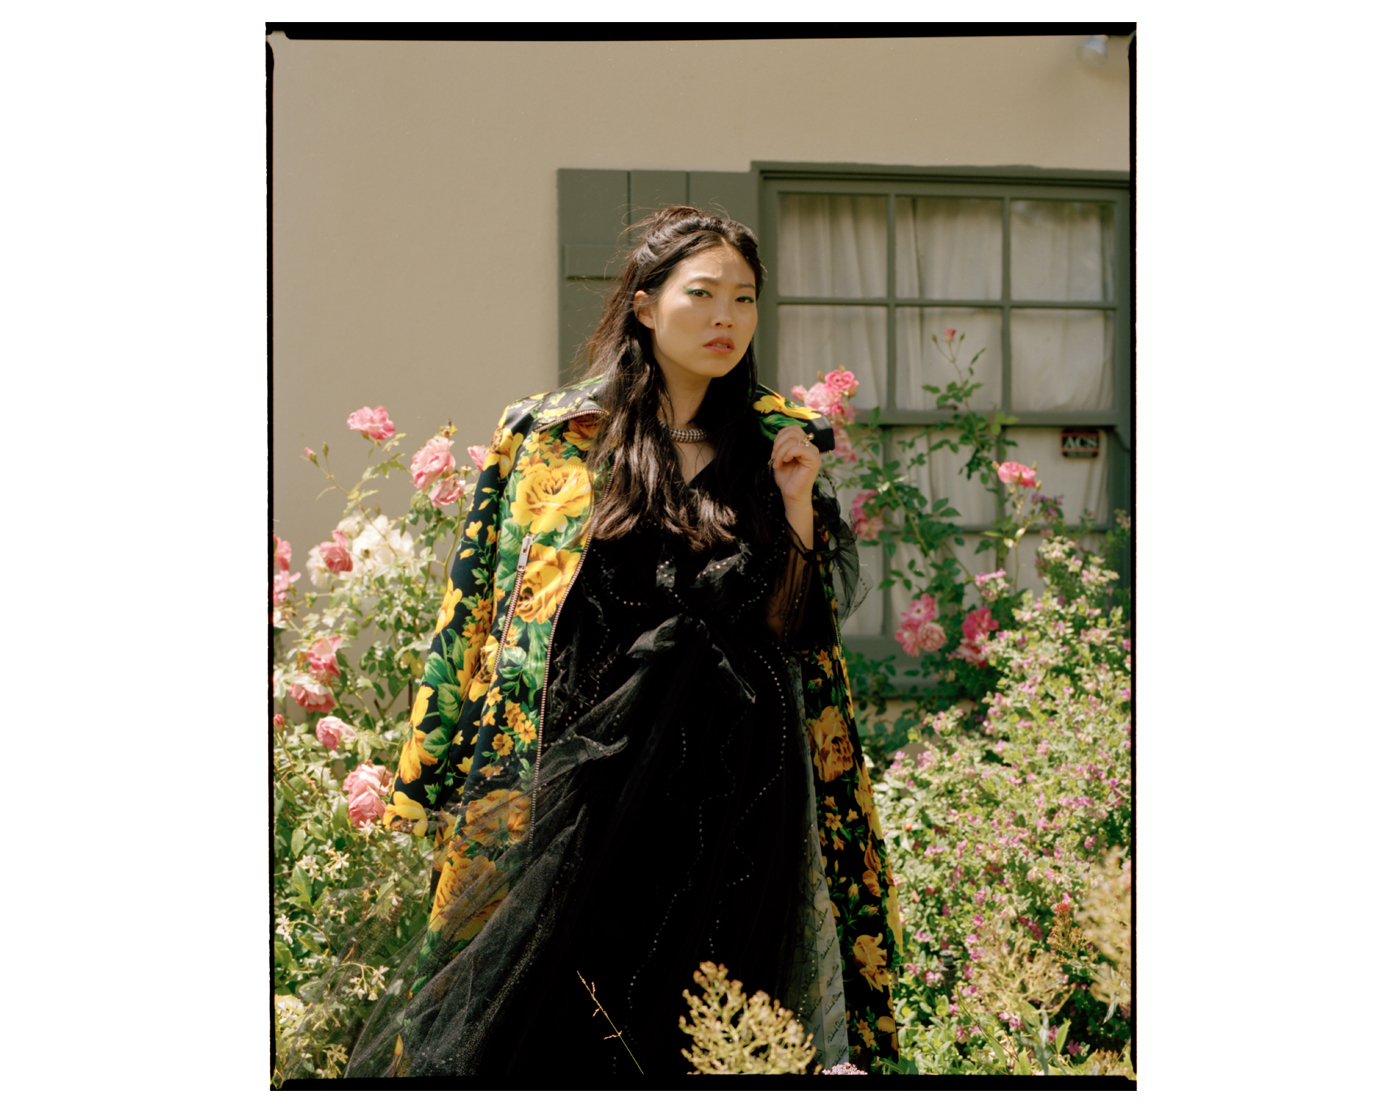 Awkwafina, photographed for WWD in Los Angeles, CA by Brad Torchia